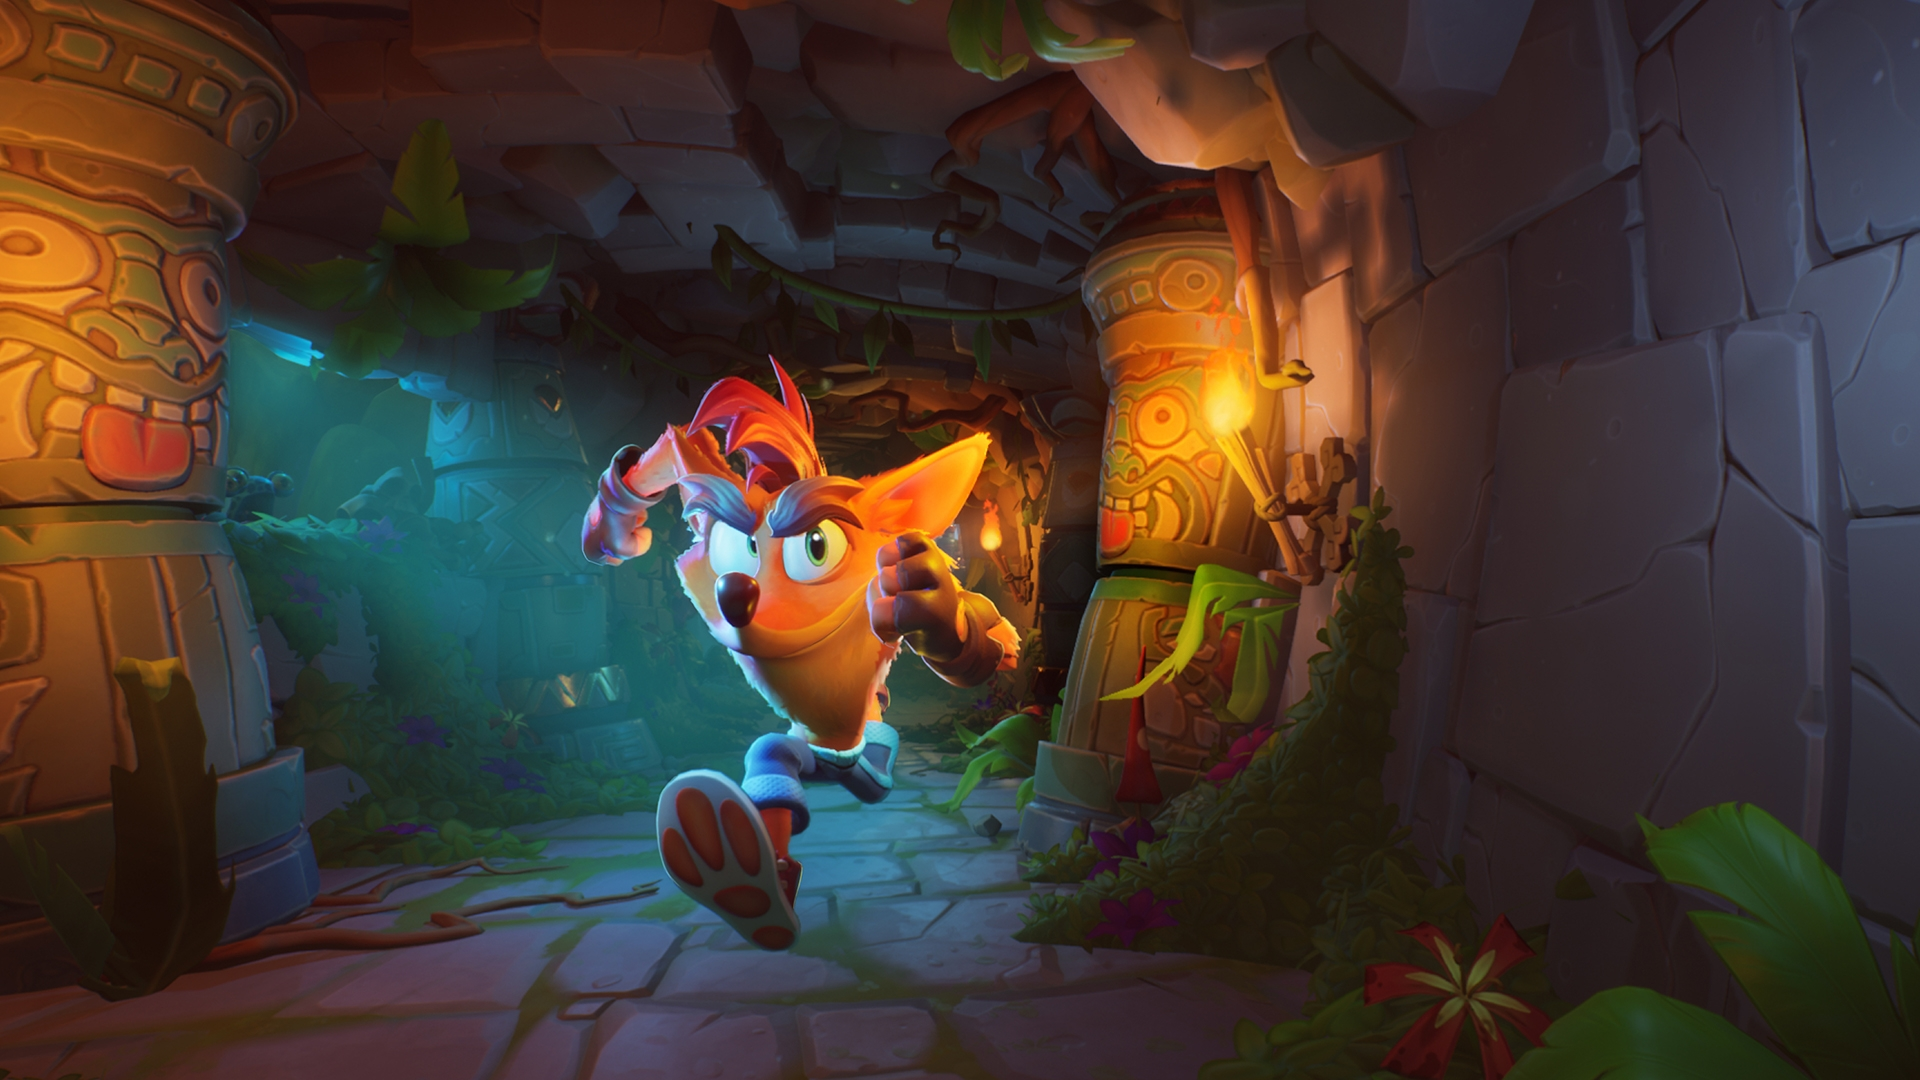 Crash Bandicoot™ 4: It's About Time —Arrives on Battle.net on March 26